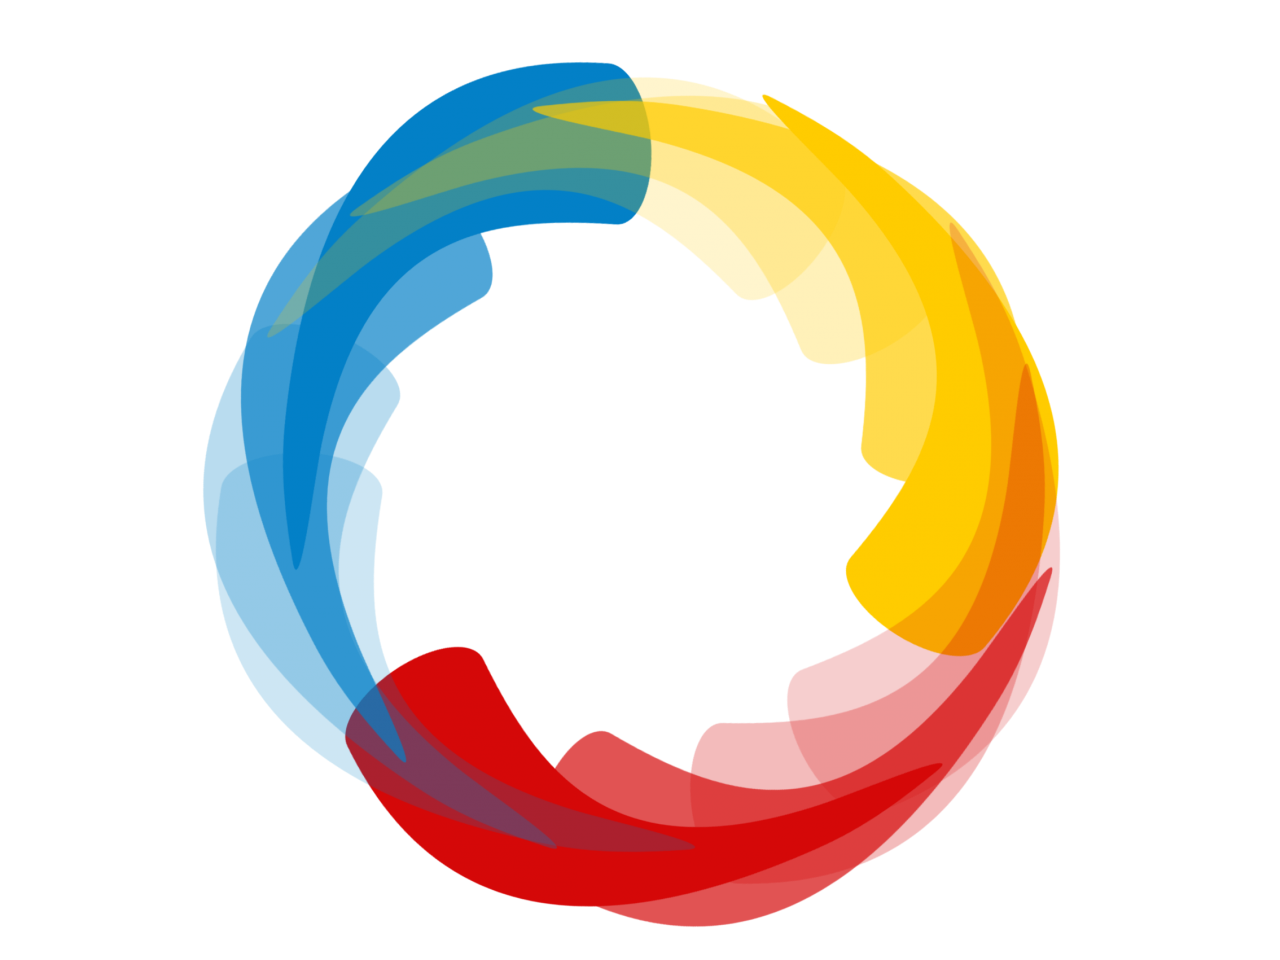 Multi Colors in Circle PNG Image